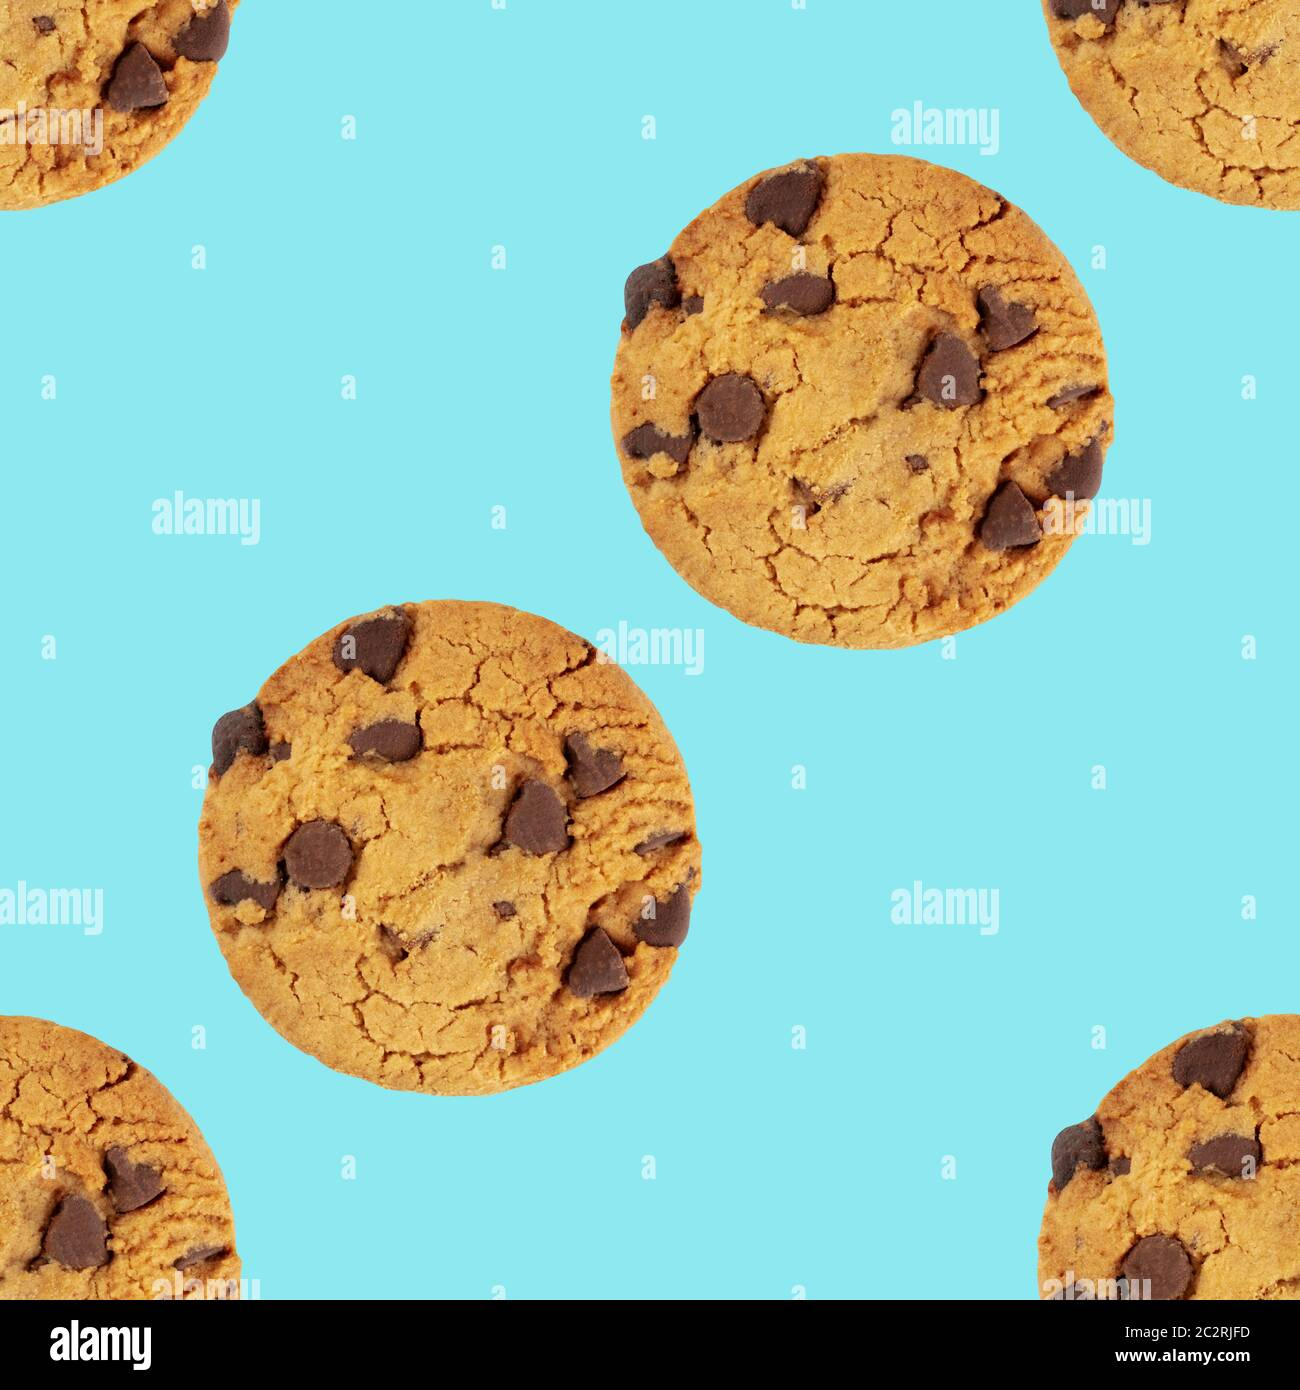 Chocolate chip cookies, gluten-free, a seamless repeat pattern on a blue background Stock Photo